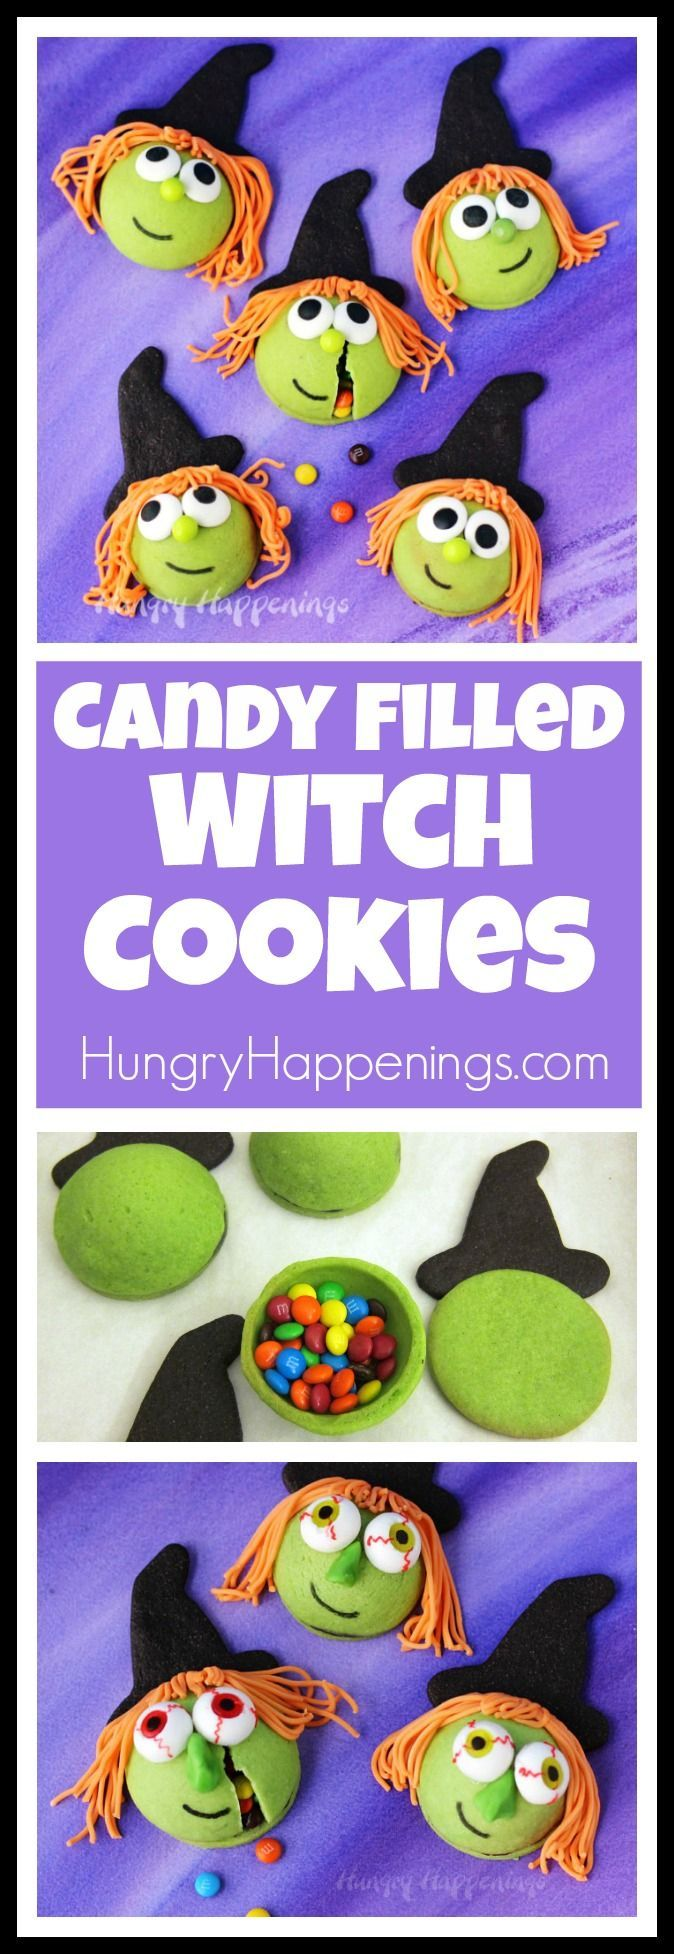 Make cute or kooky Candy Filled Witch Cookies for your Halloween parties or bake sales.